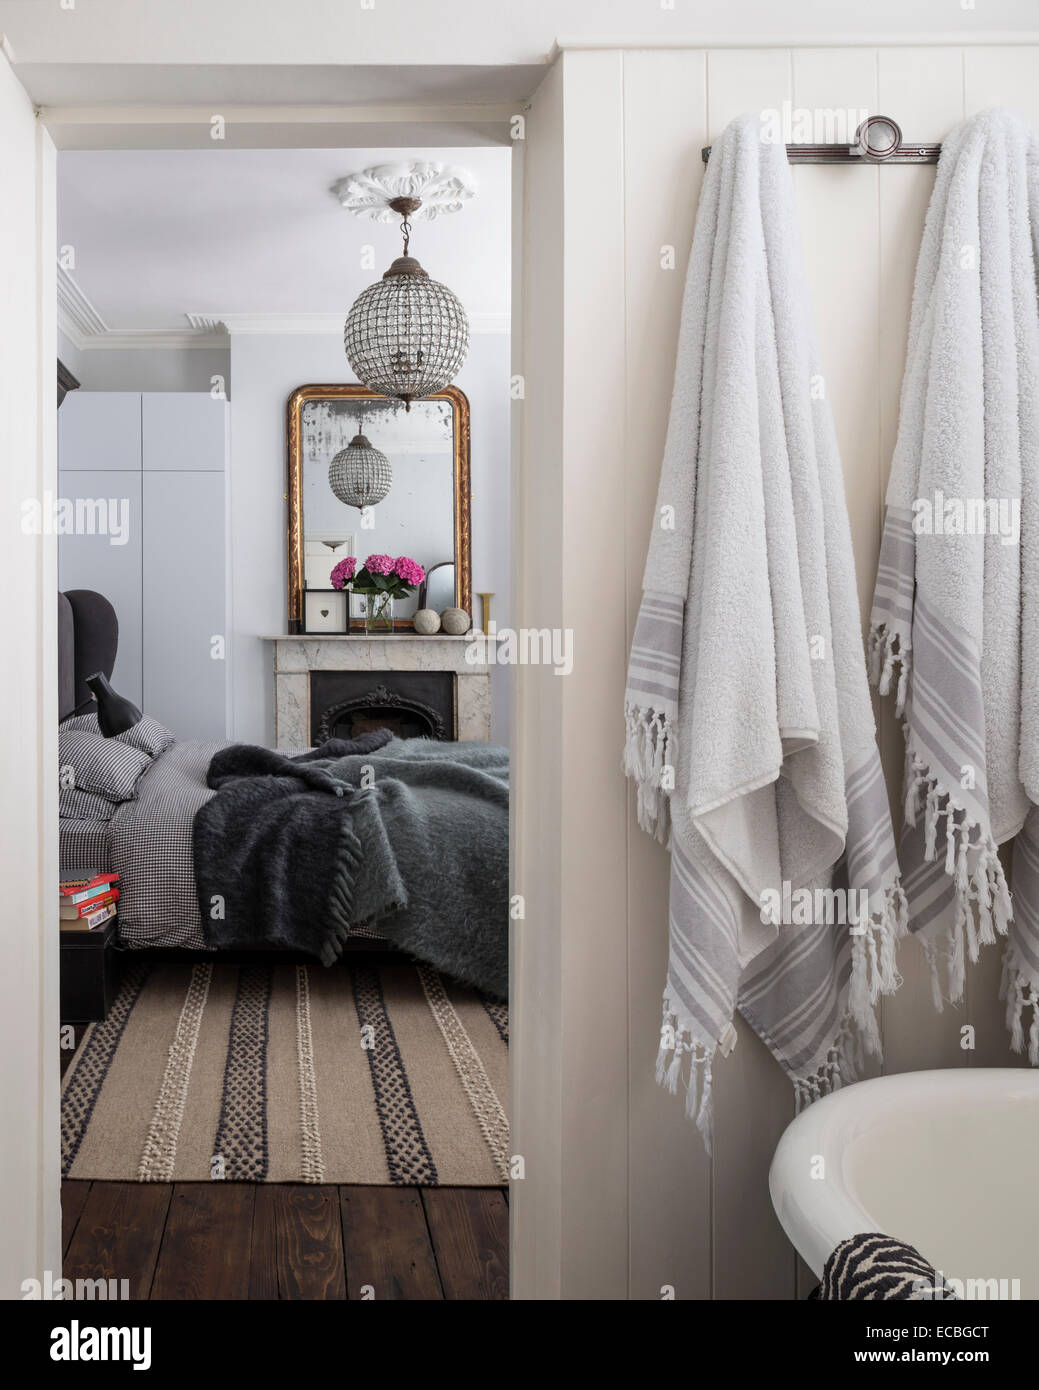 View from bathroom through to bedroom - Stock Image